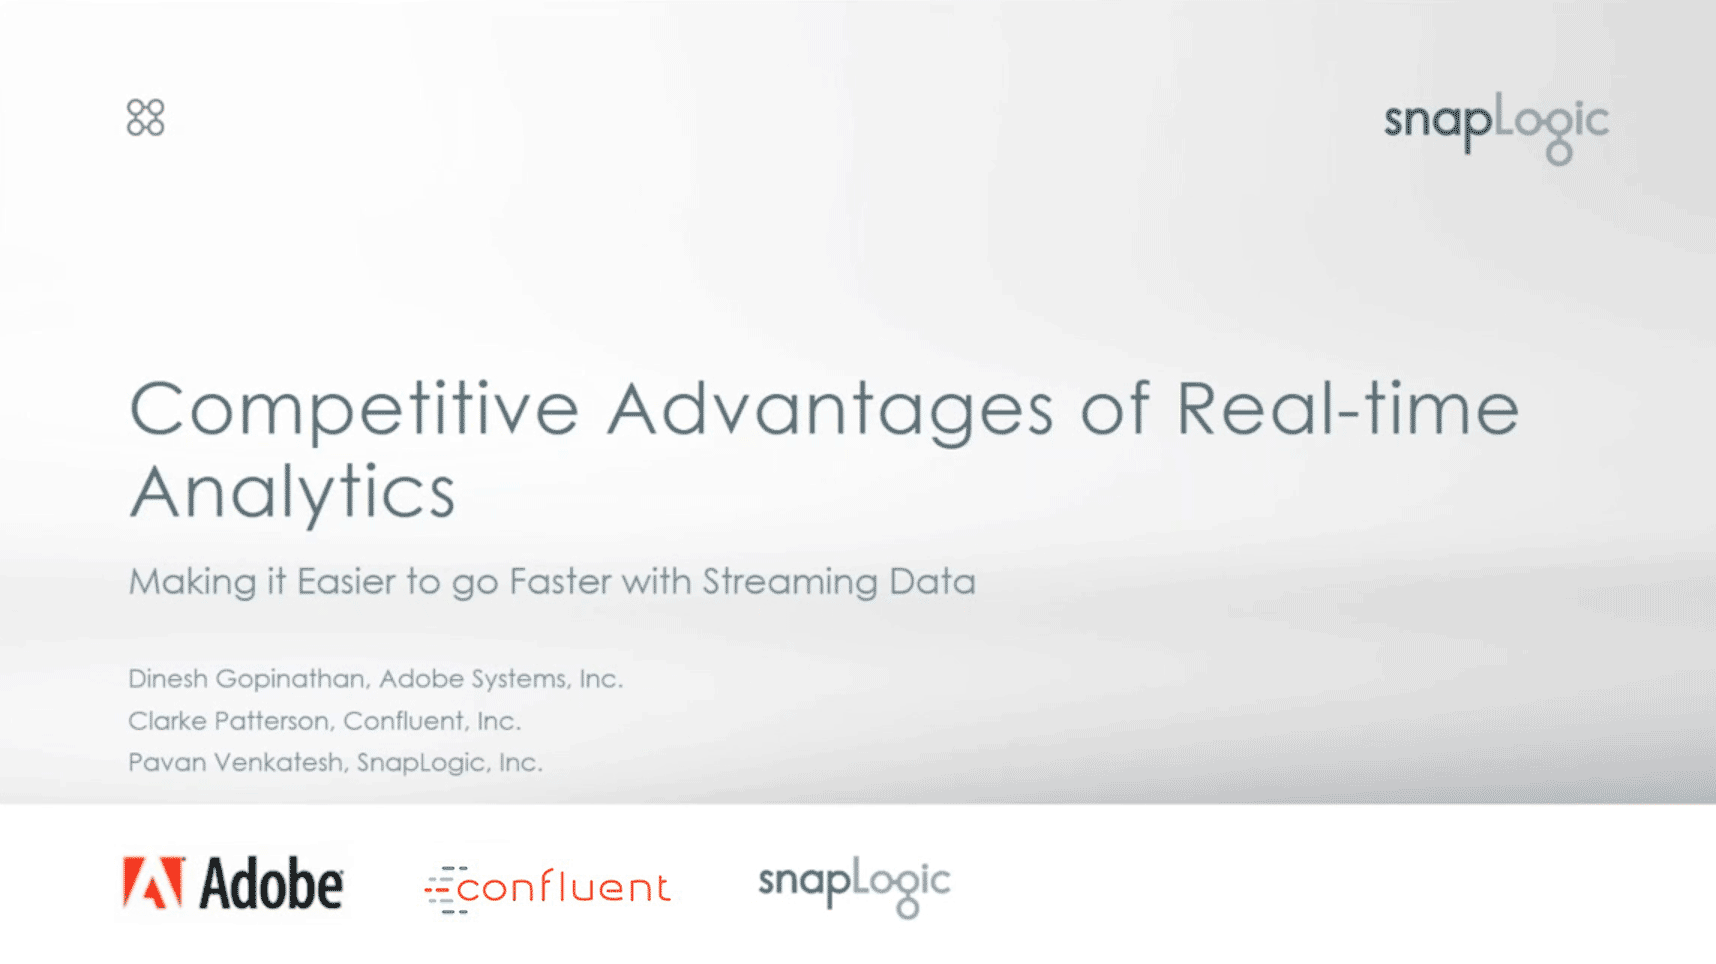 Competitive Advantages of Real-time Analytics